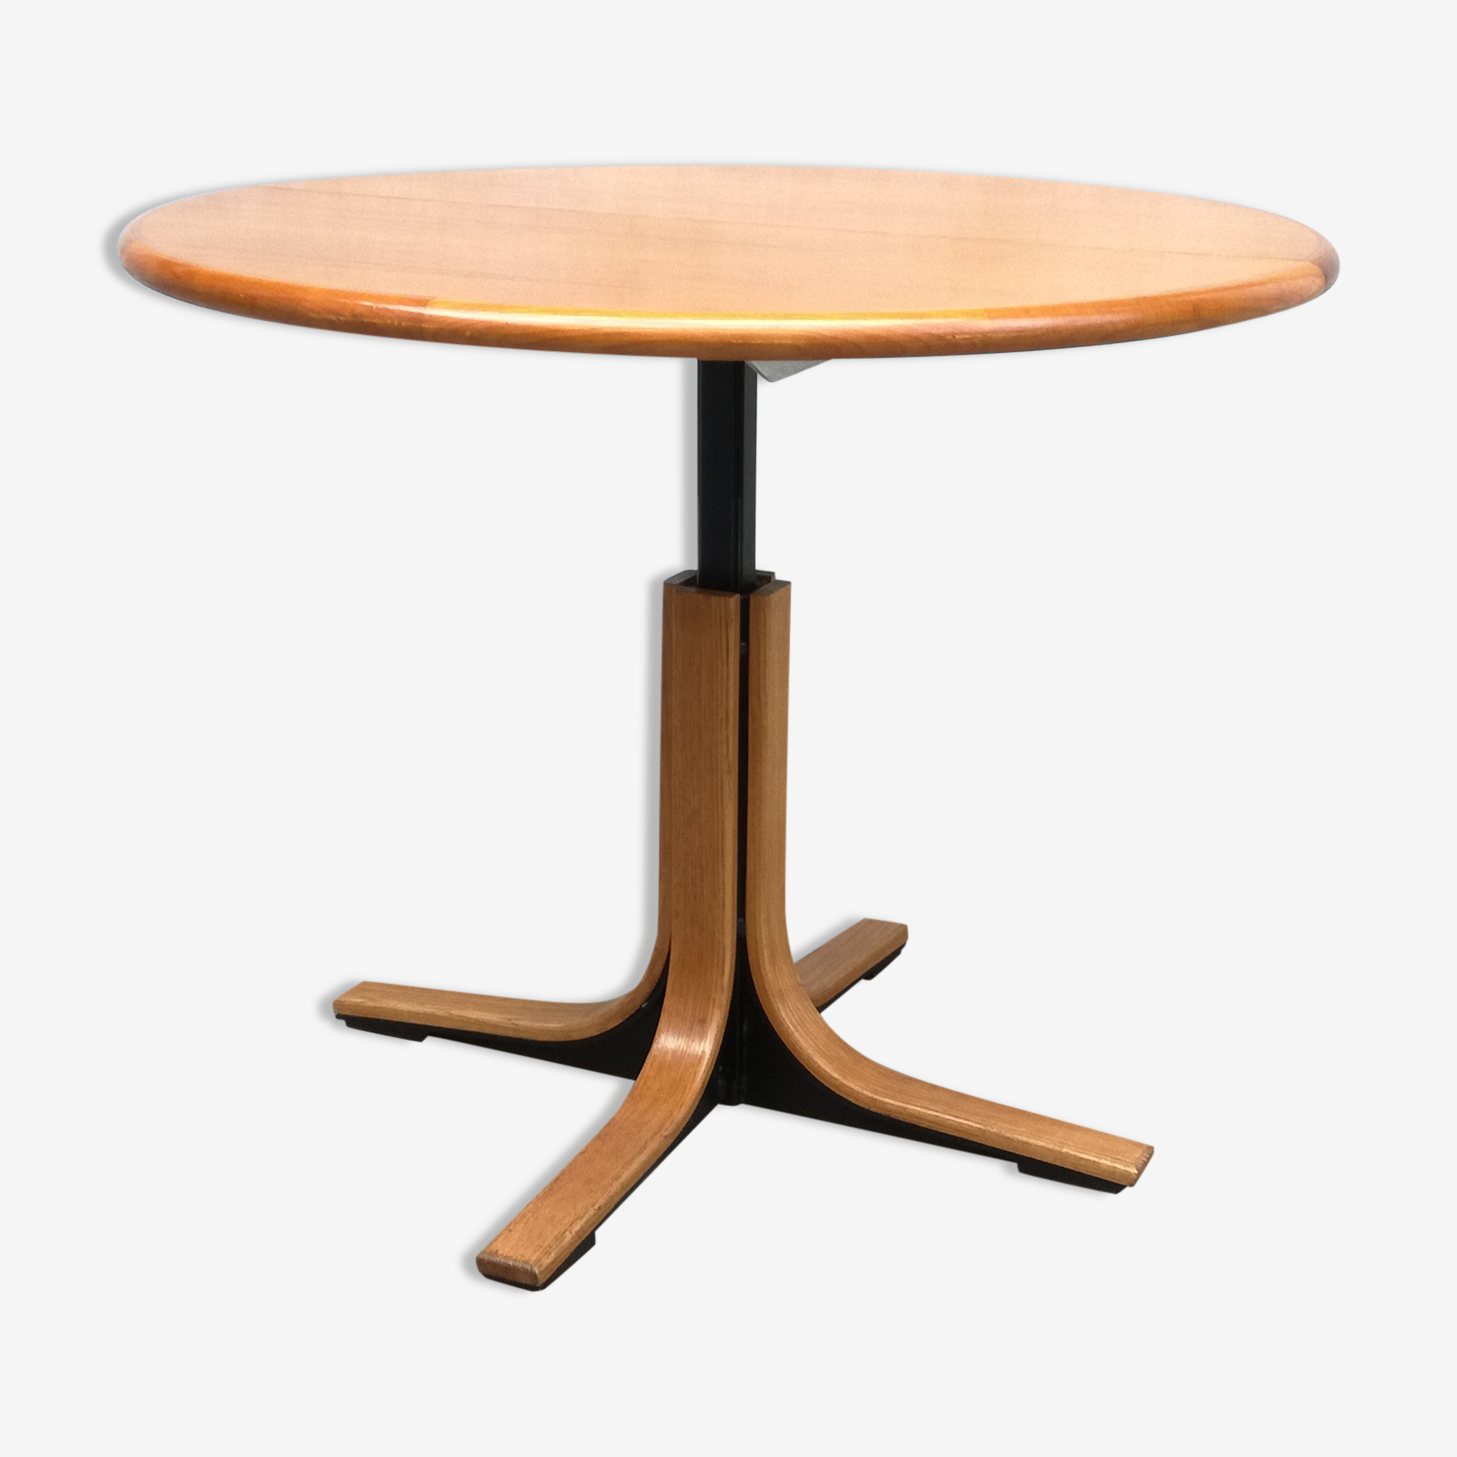 Design round table in wood and metal